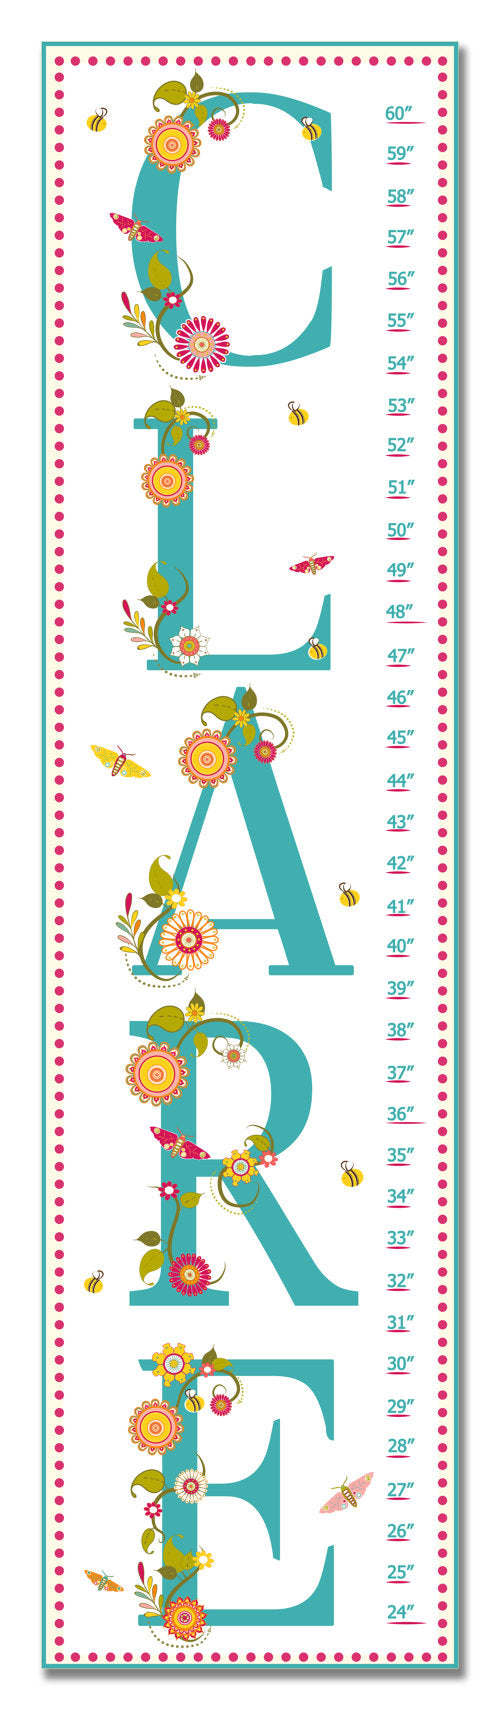 Name Personalized Growth Chart - Nursery Decor - Baby Shower Gifts